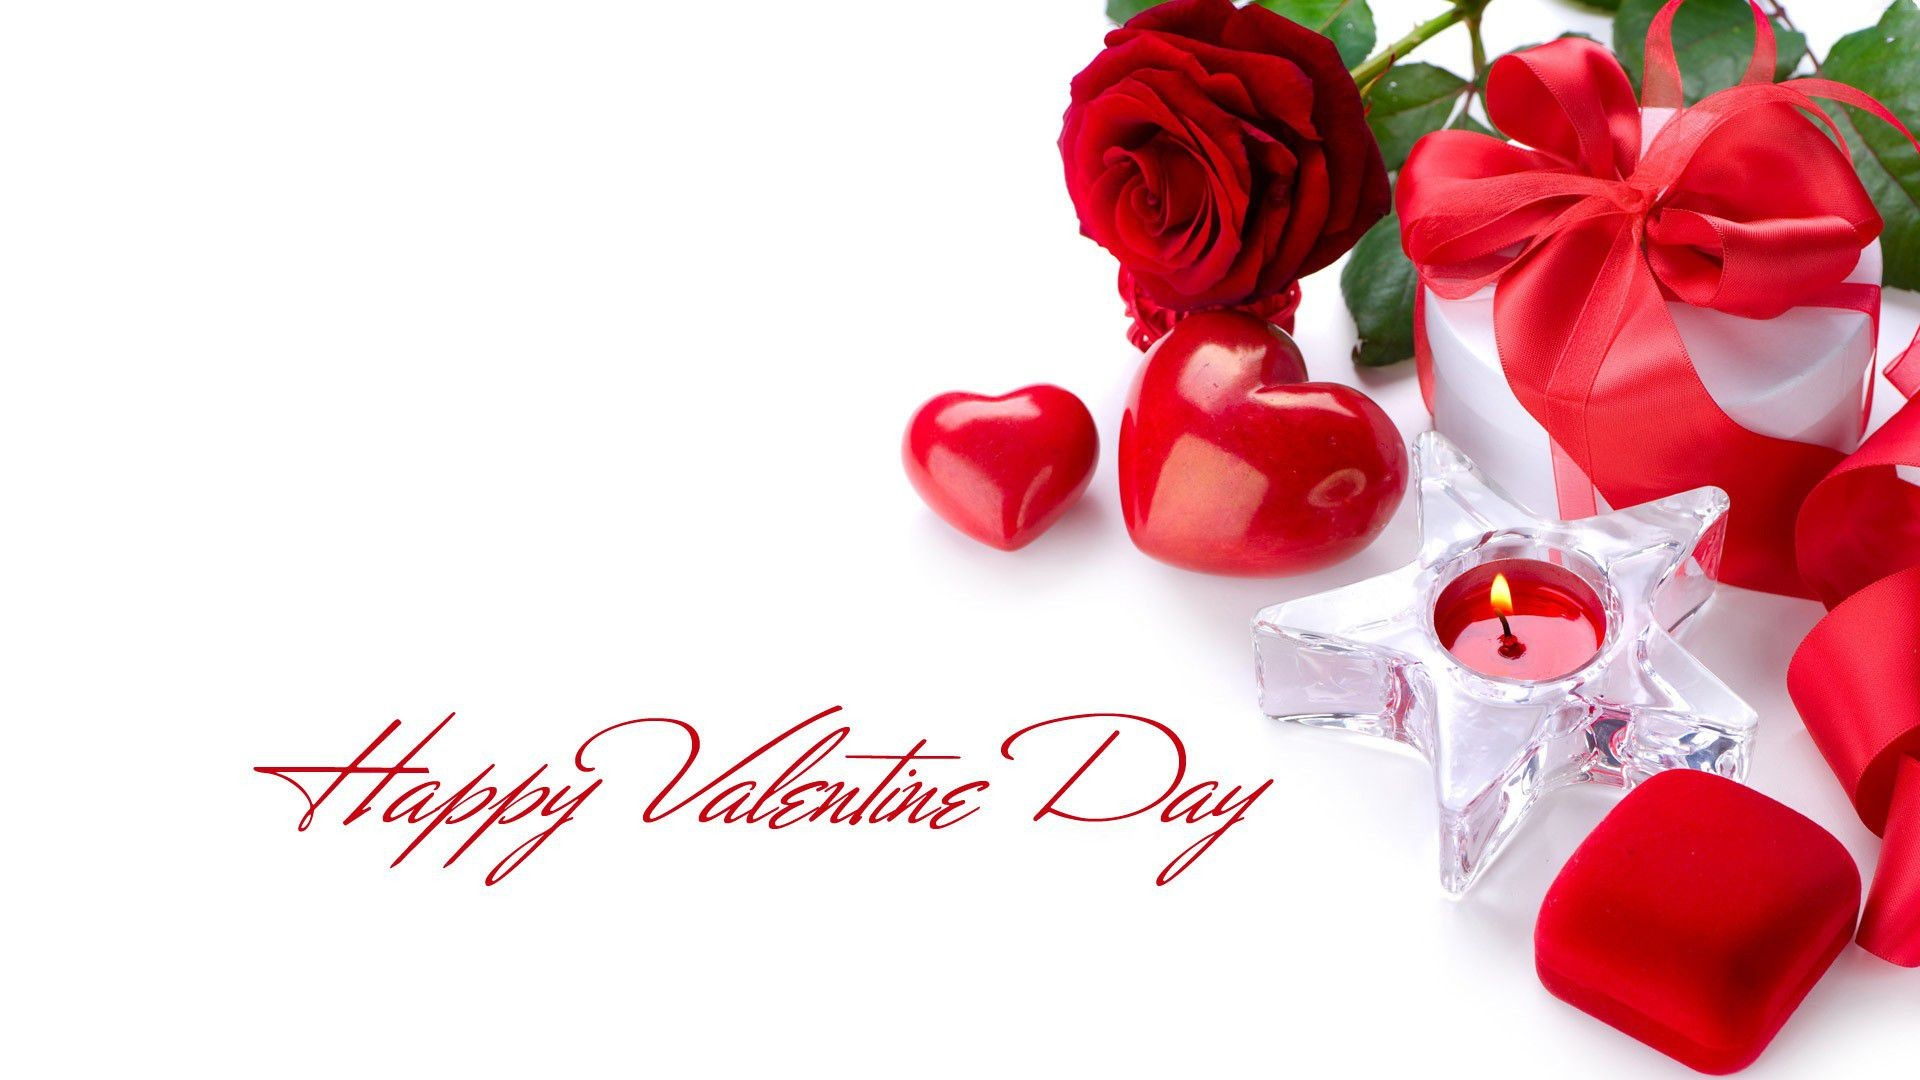 1920x1080 happy valentines day red rose with candle hd wallpaper